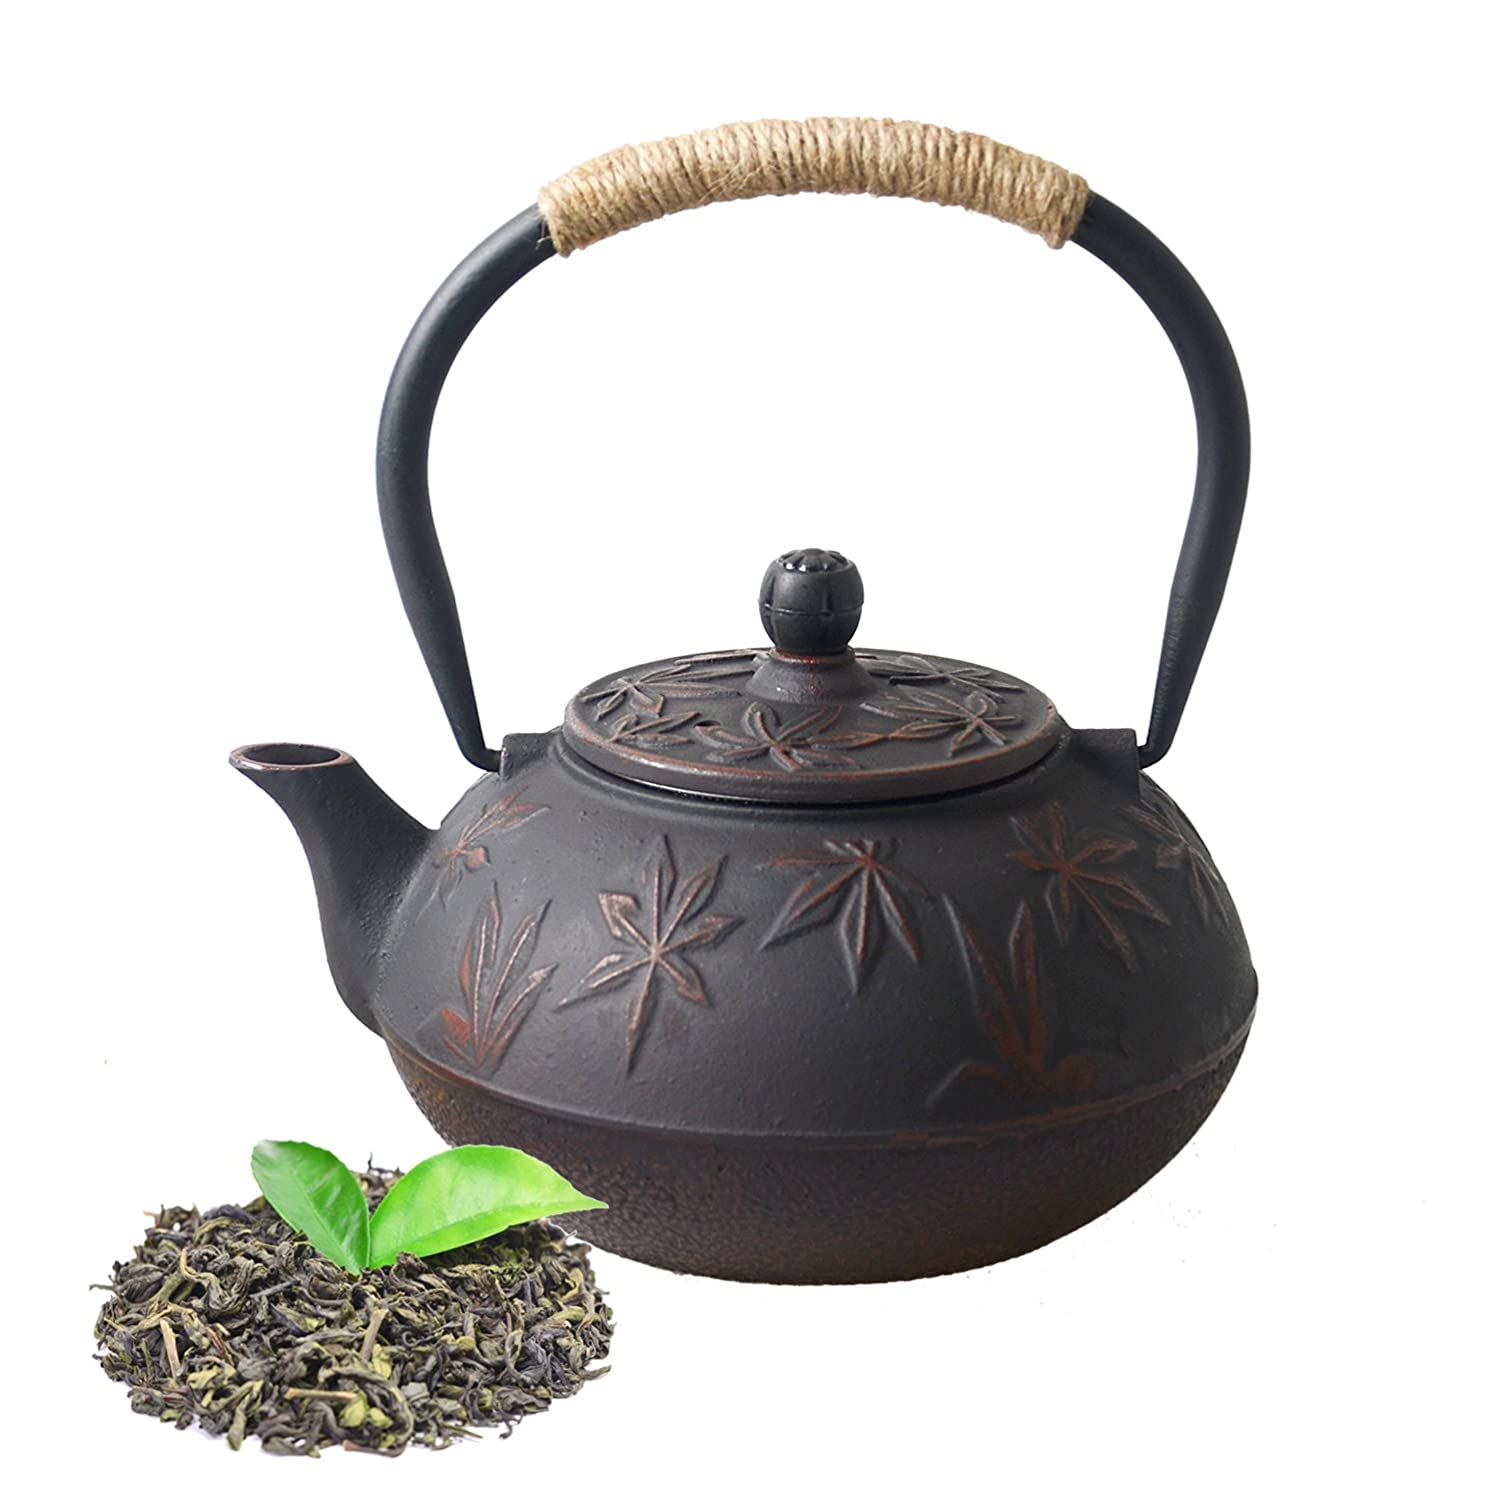 Hwagui - Black Fish Scale Design Cast Iron Teapot with Infuser for Tea Brewing(800ml/27oz) fish-scale-01